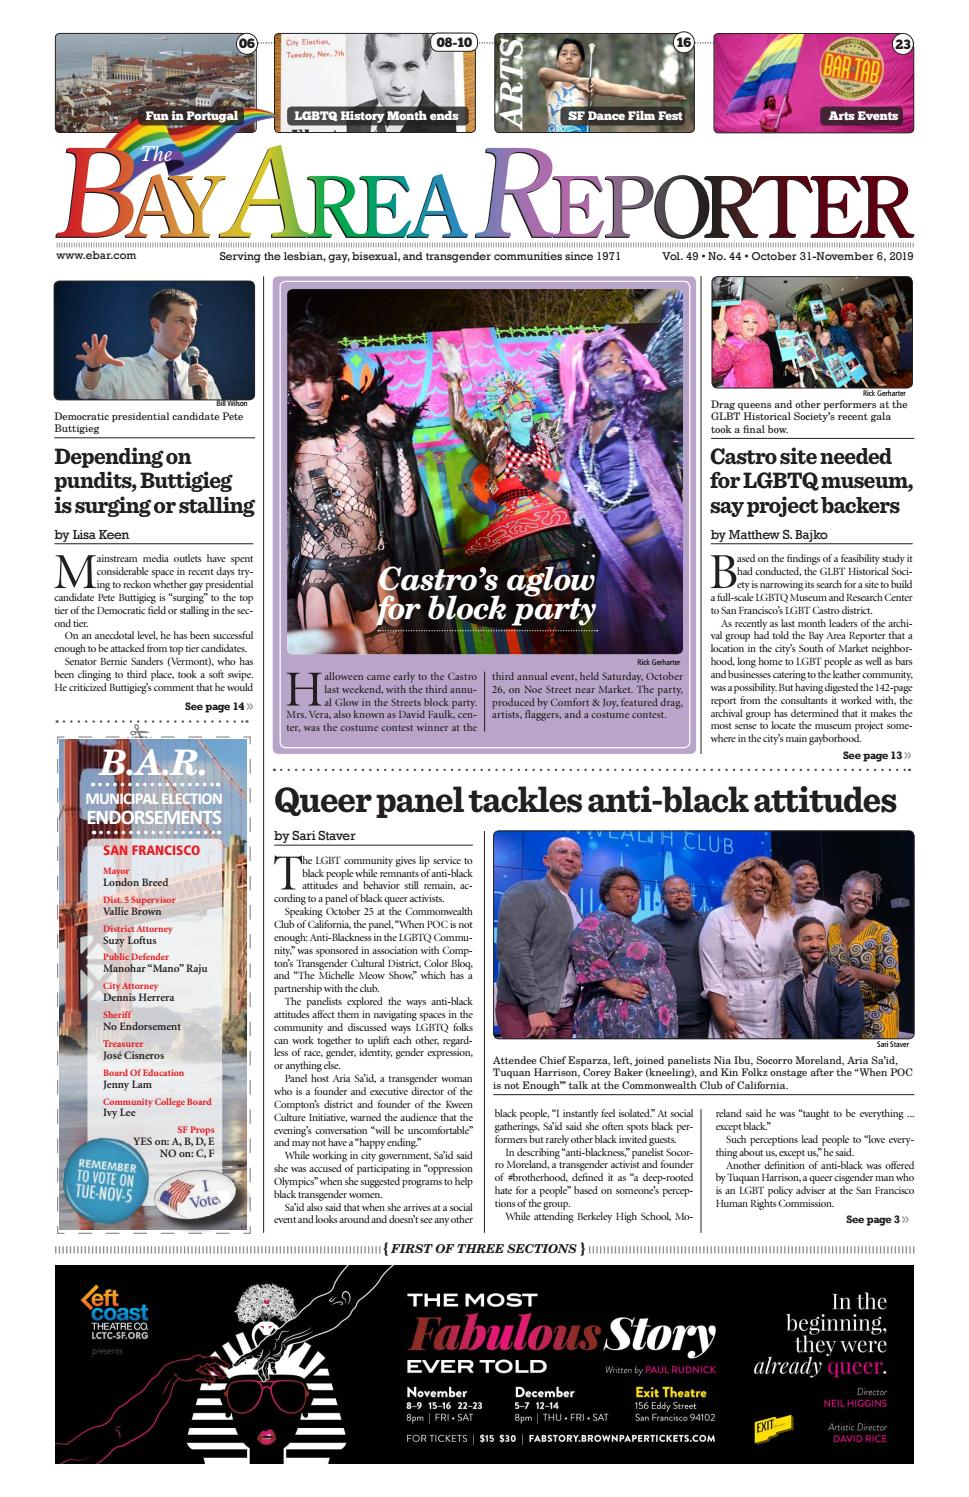 Trans Halloween Party Oct 31 2020 Los Angeles October 31, 2019 Edition of the Bay Area Reporter by Bay Area